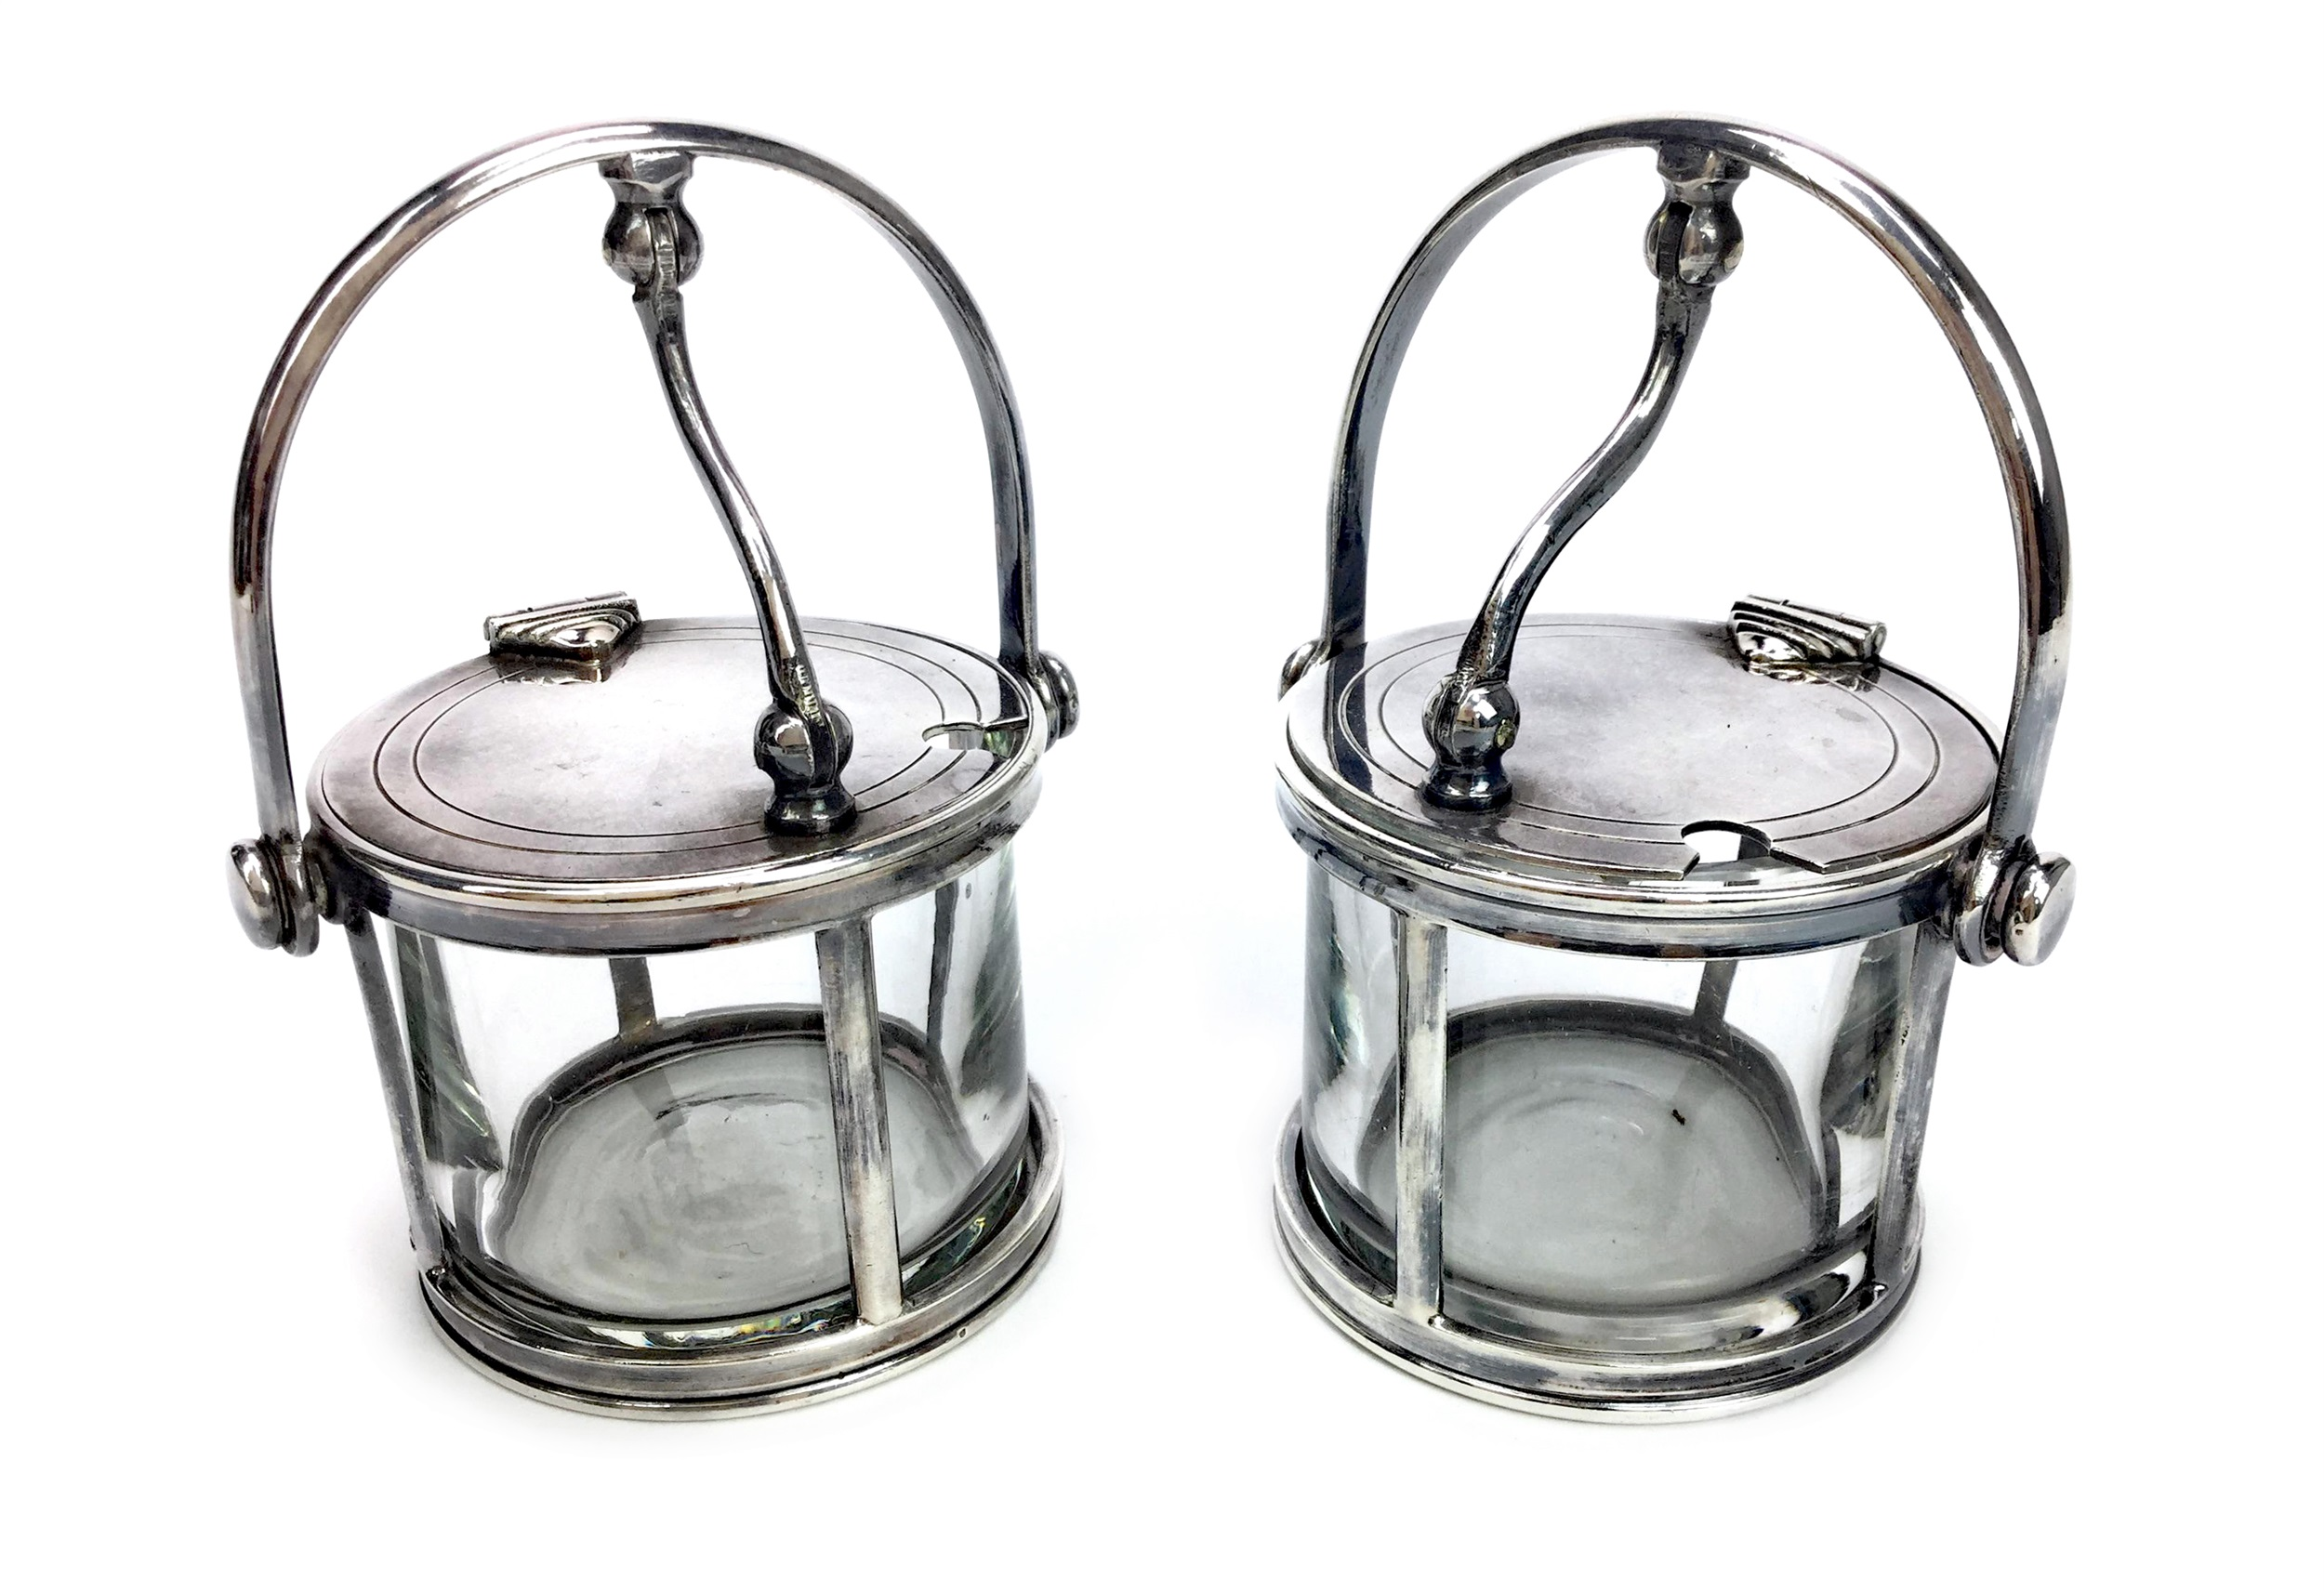 Lot 804 - A PAIR OF GLASS MUSTARD POTS WITH MOUNTS BY FELIX FRERES